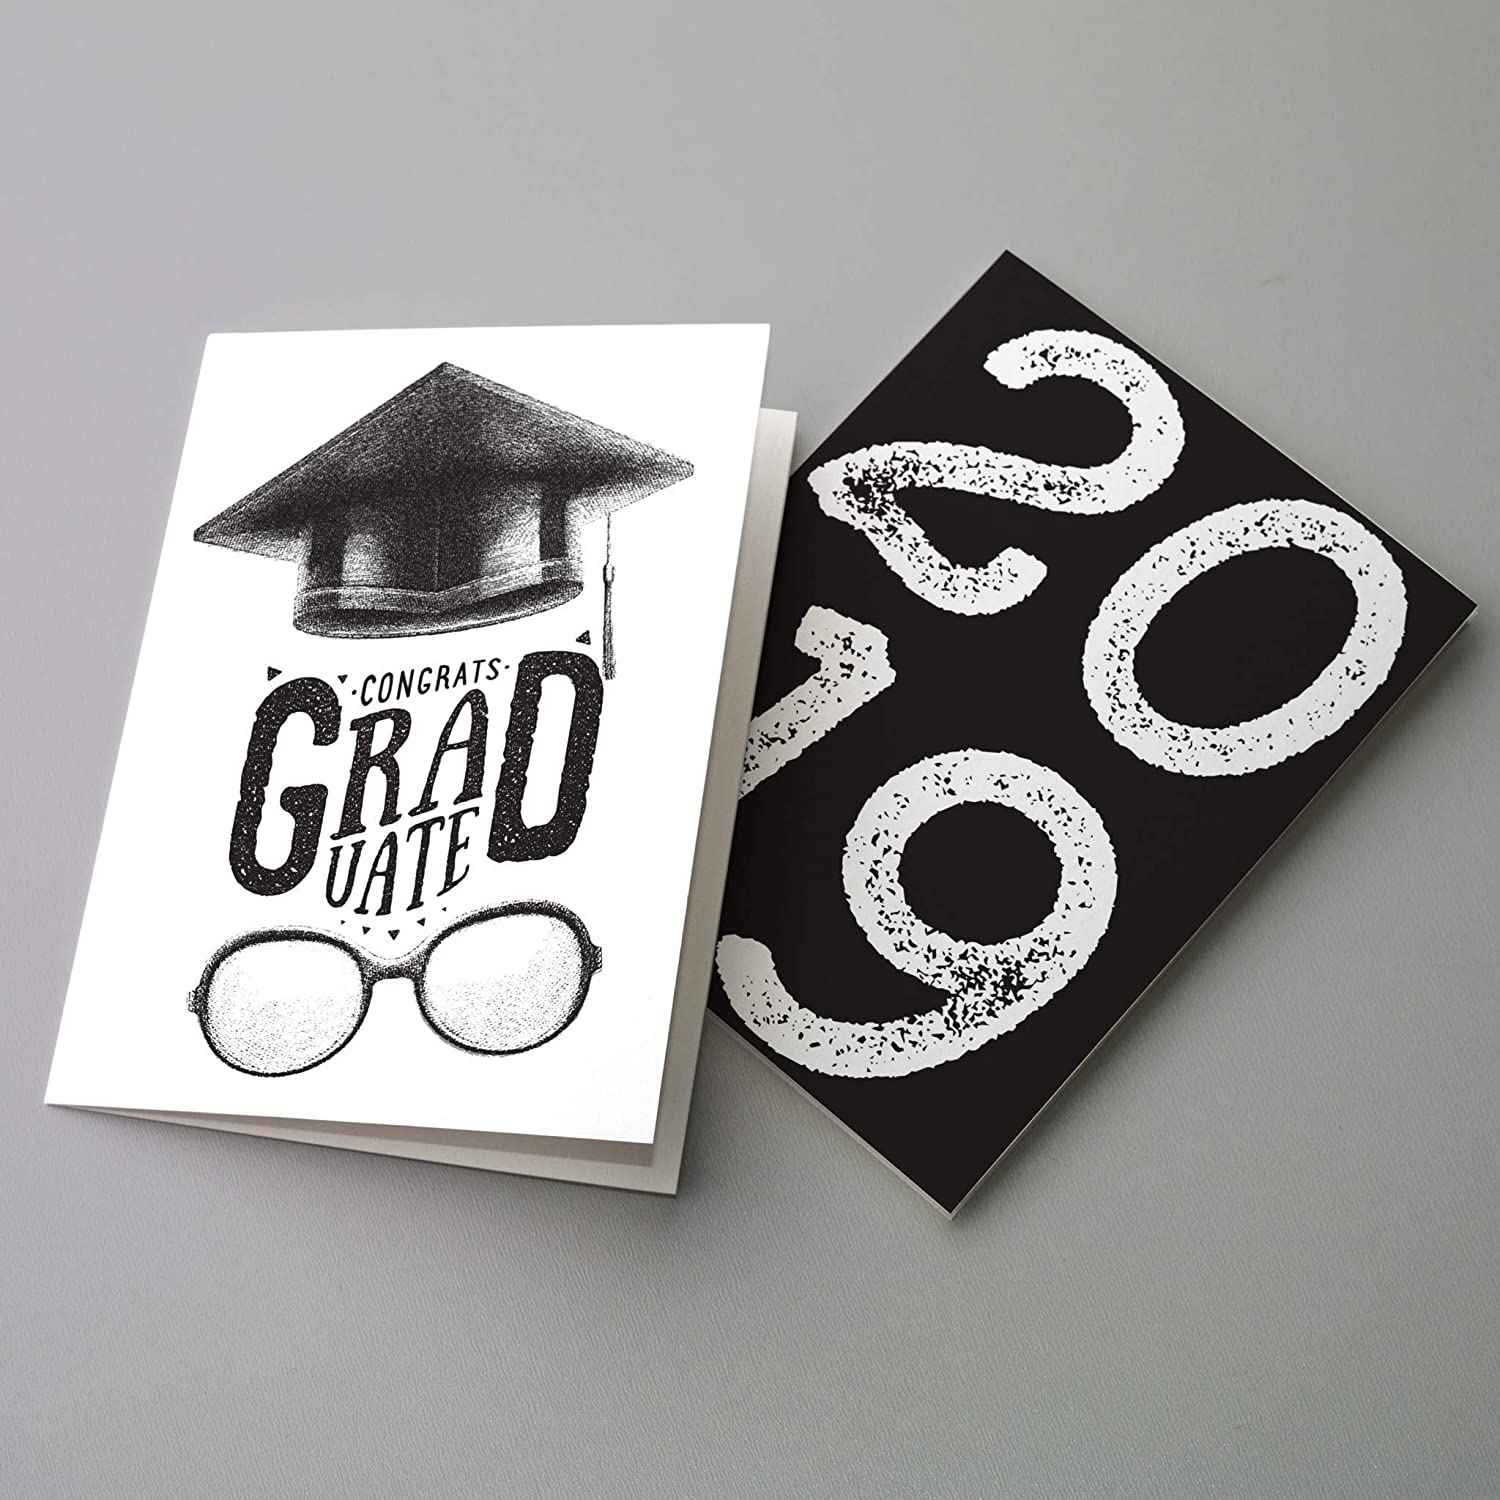 College Grad High School Graduation Present Greeting Cards Graduation Party 2019 Graduation Cards And Envelopes - 24 Class of 19 Black /& White Modern Grad Gifts Congrats Graduate Hooray